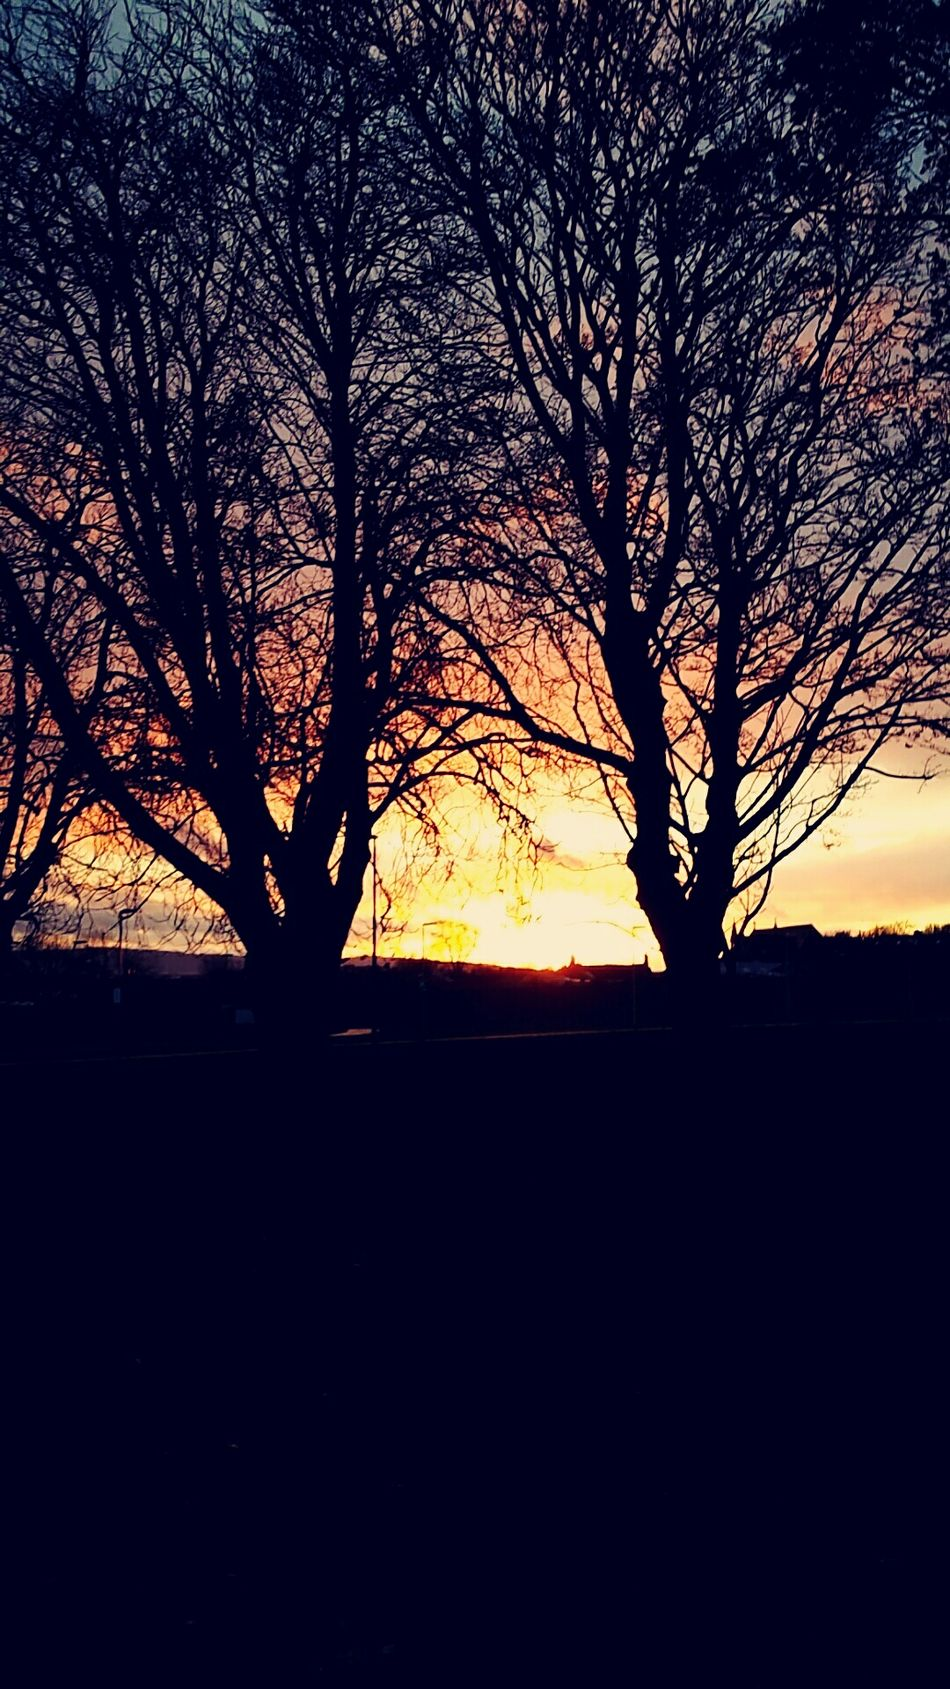 flaming sky Sunset Endoftheday Natural Beauty Beautifulcolddays Trees Contrast Coloursplash Campus Life The Nature Photographer - 2016 Eyeem Awards